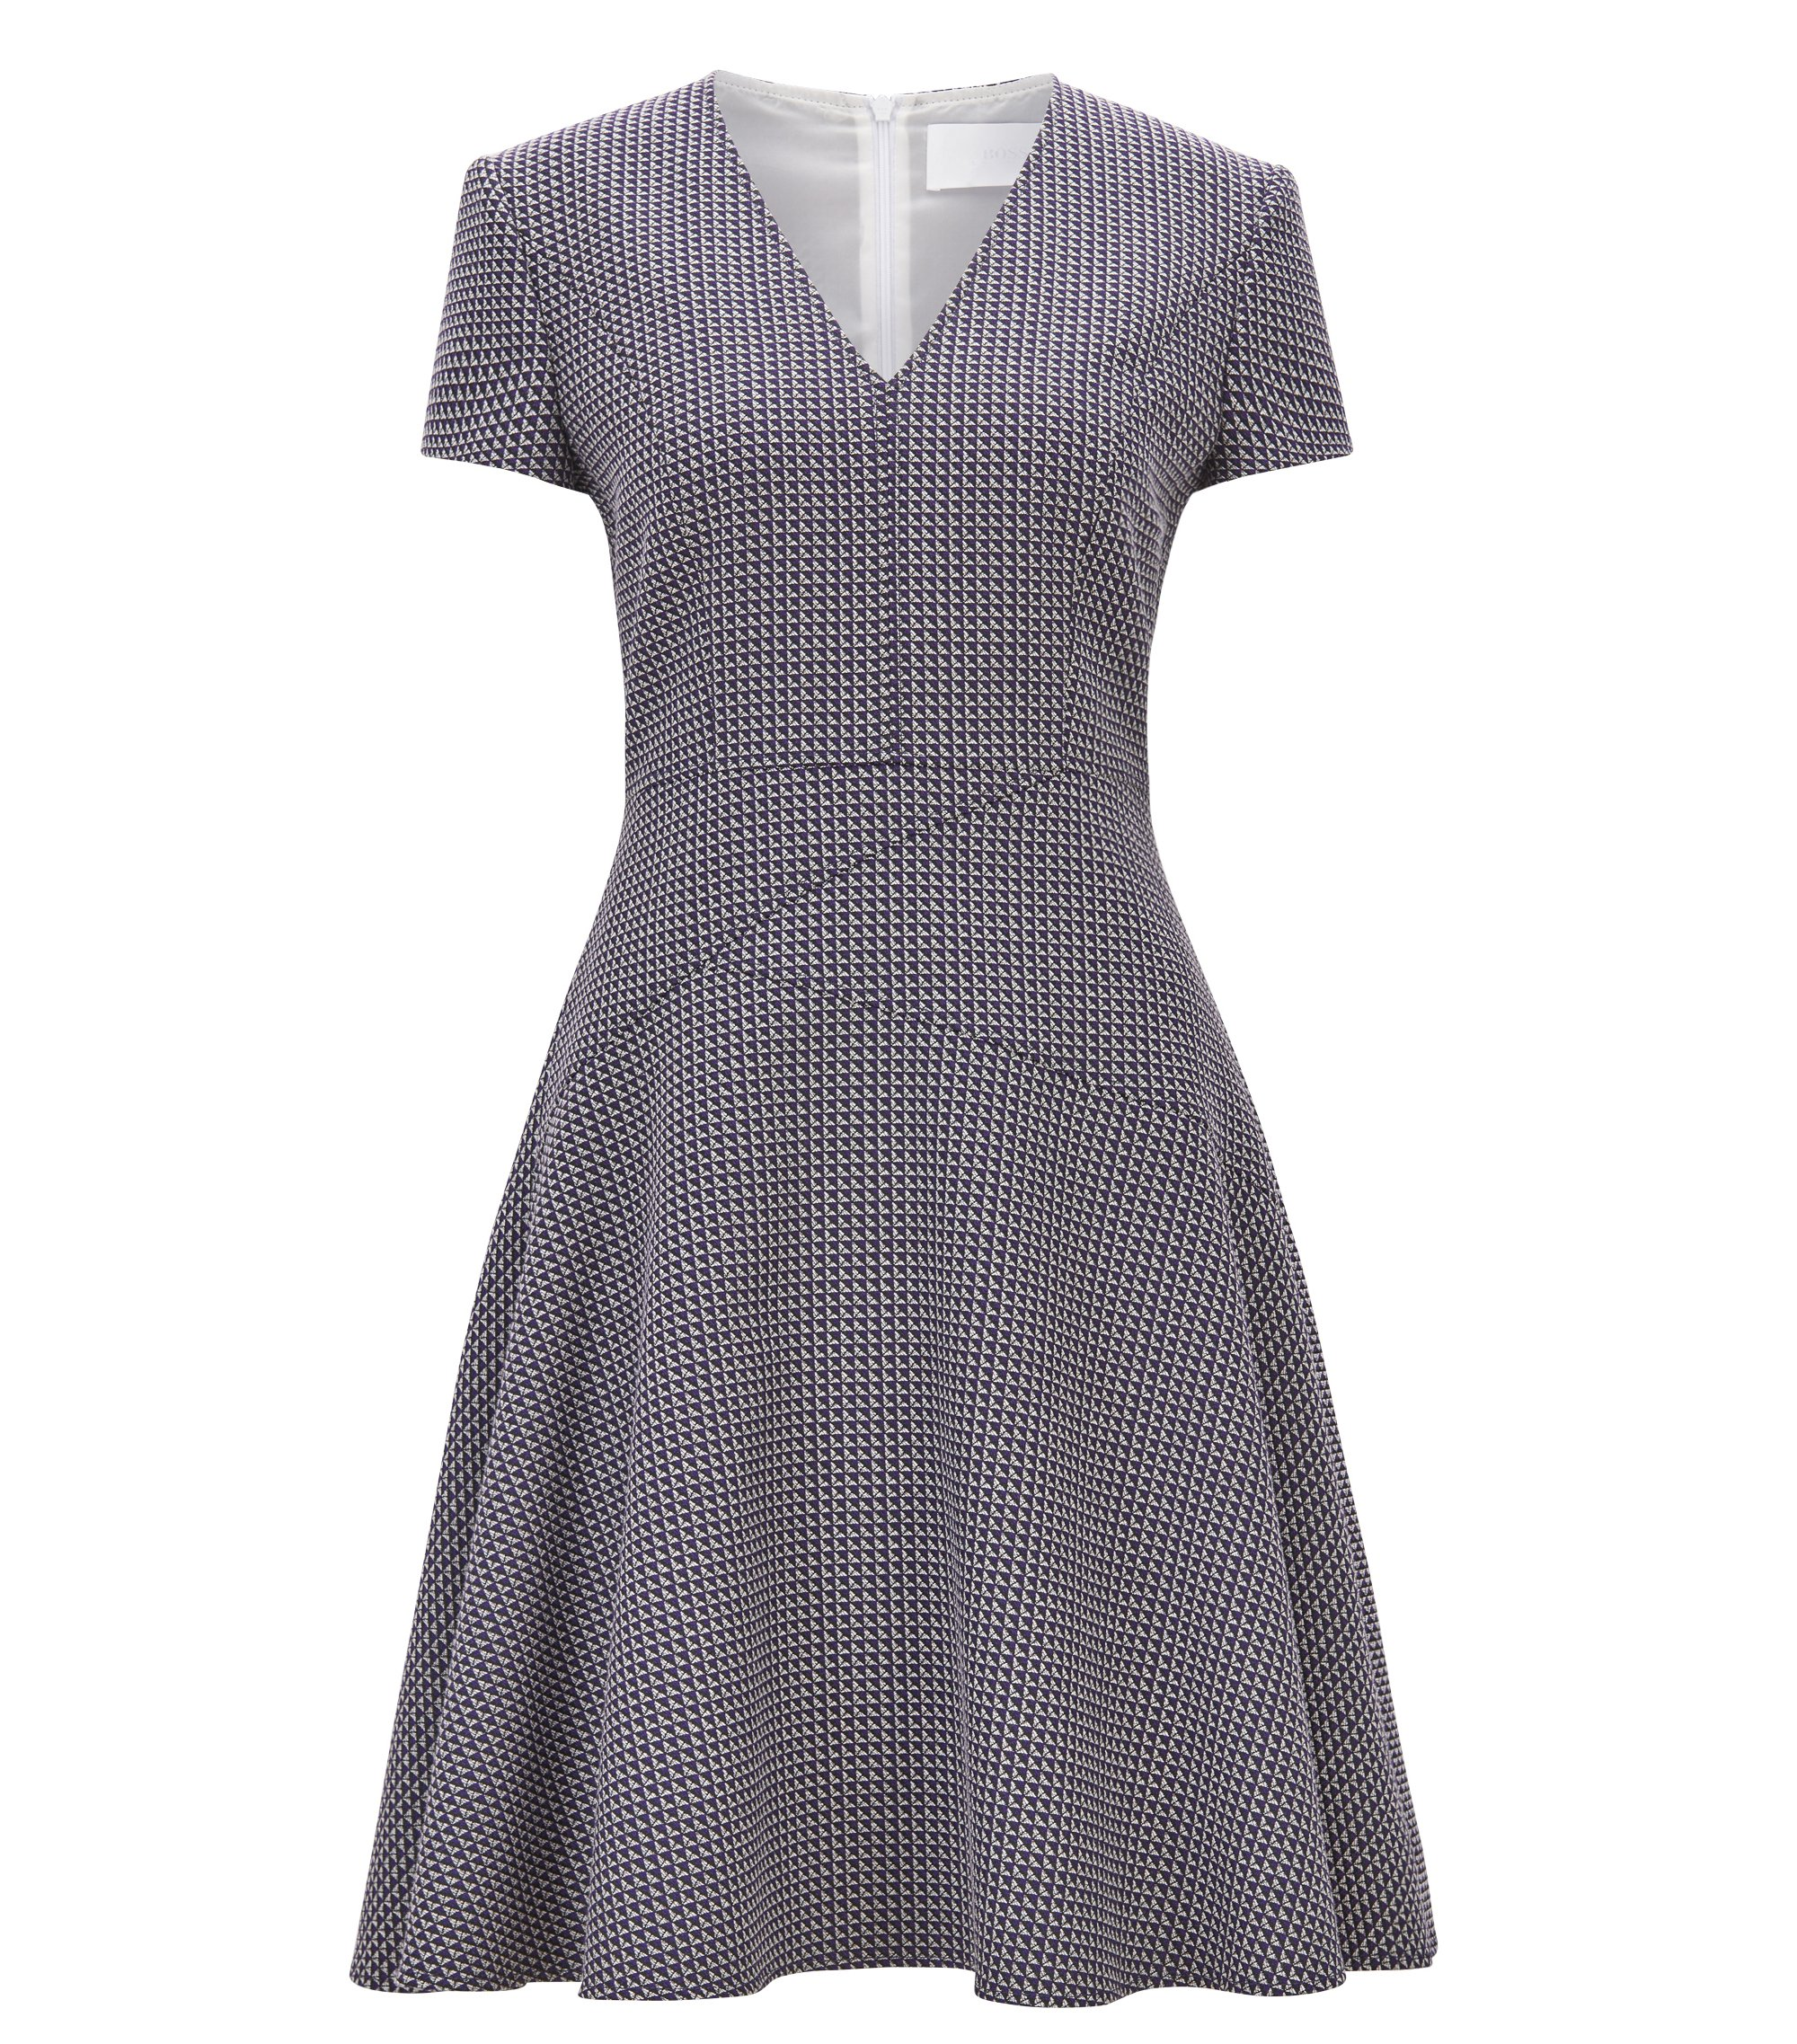 A-line dress in cotton-blend jacquard, Patterned